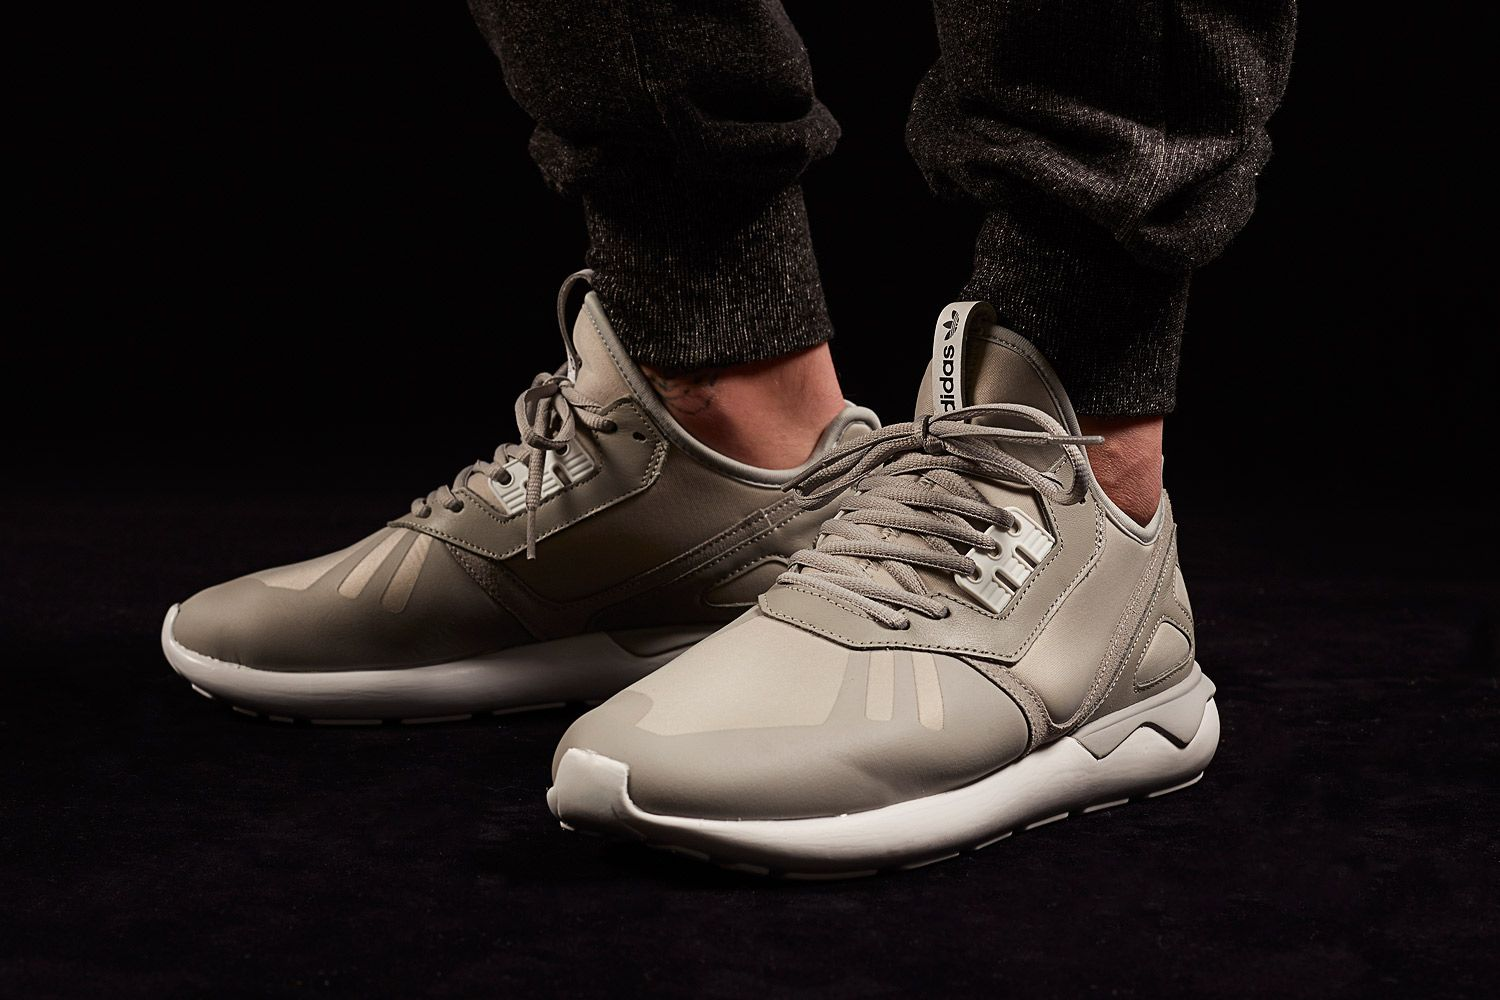 Adidas Tubular Grey On Feet